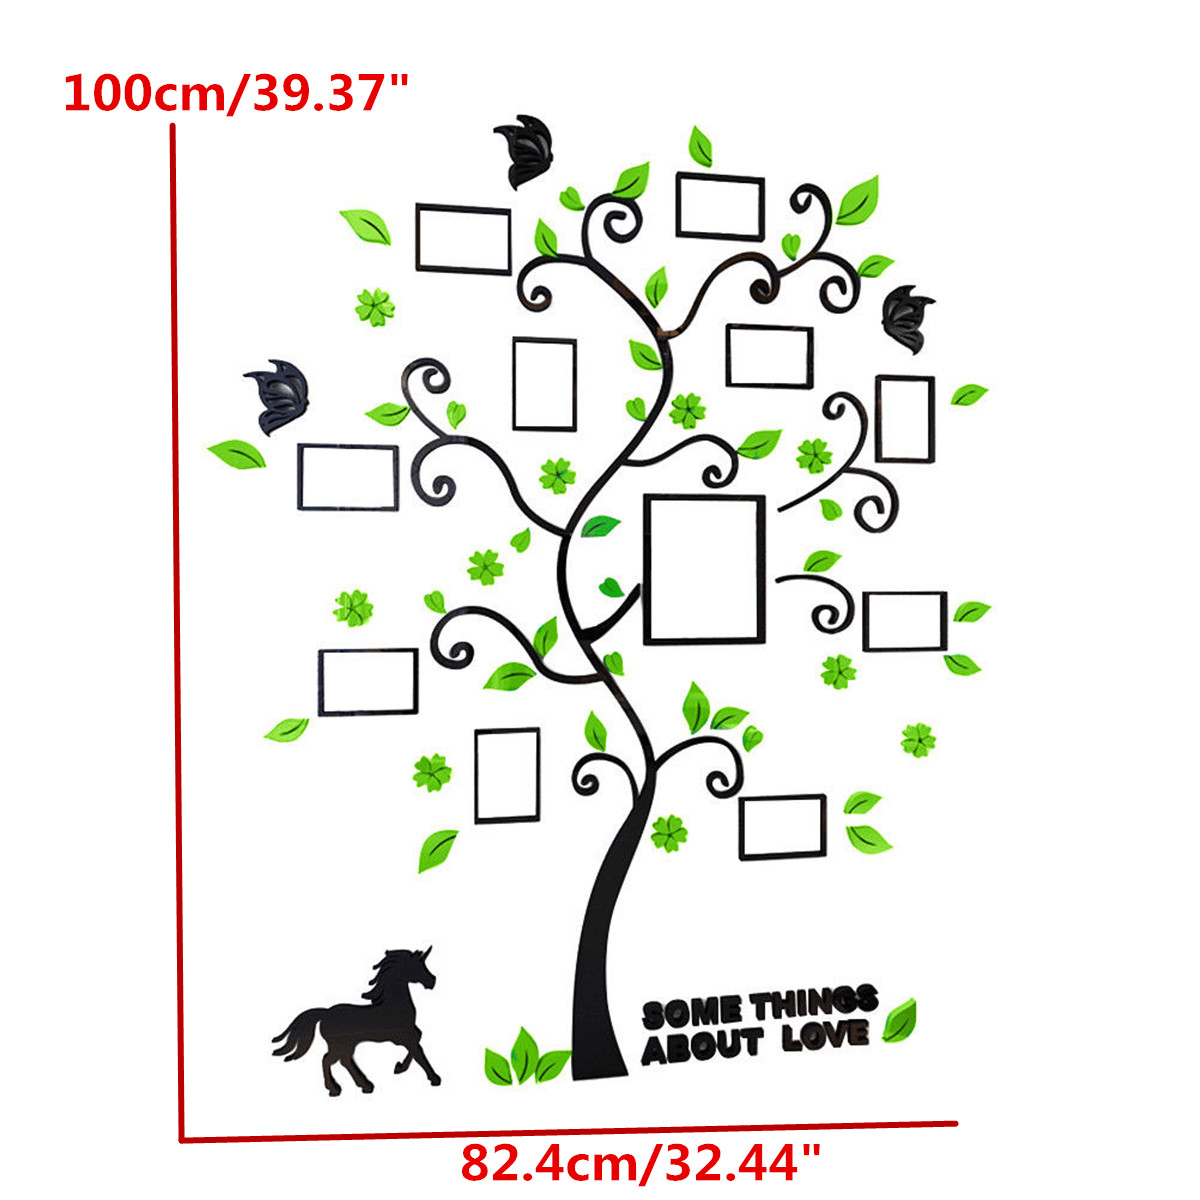 Acrylic 3D Family Photo Frame Tree Wall Stickers Removable DIY Art Wall Poster Decals Poster For Living Room Bedroom Home Decor 2